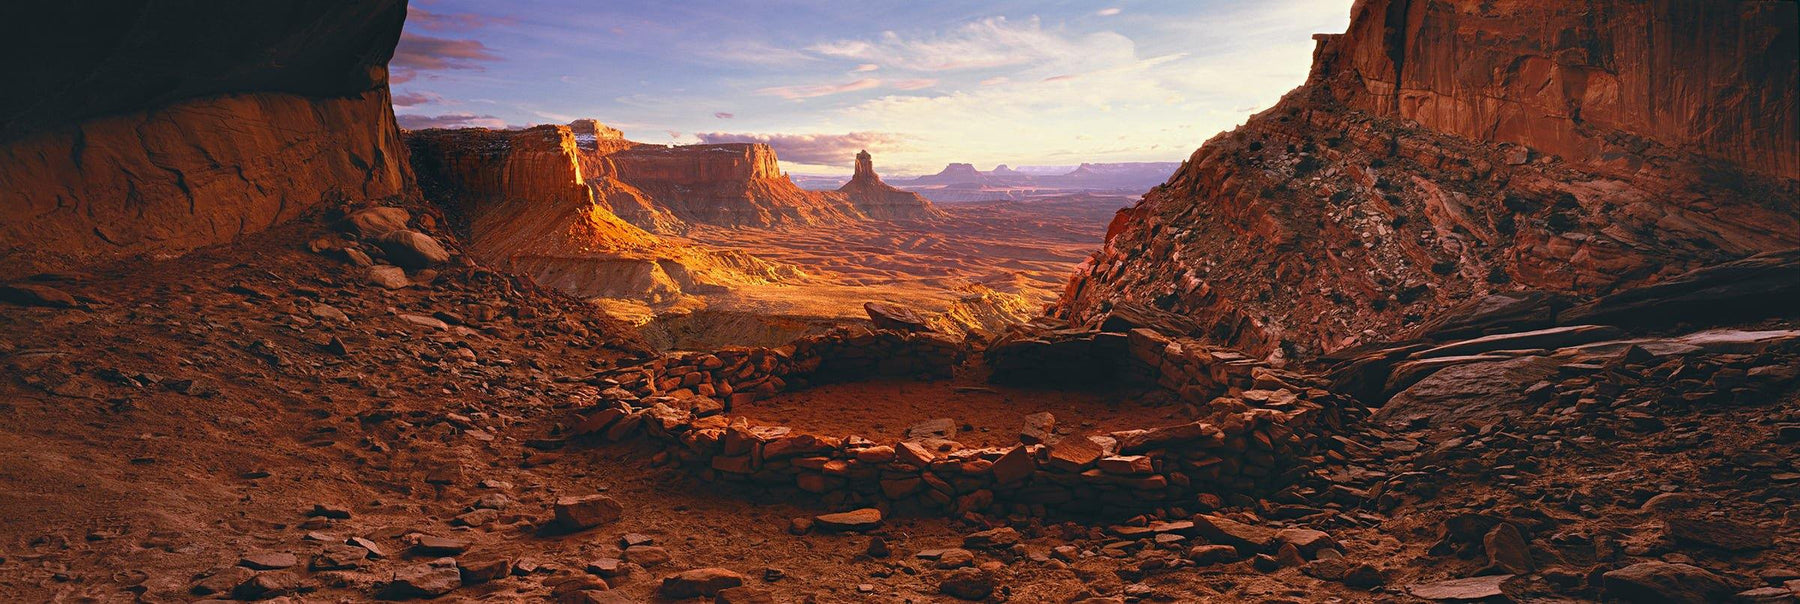 Man made stone circle on a rock plateau overlooking Canyonlands National Park Utah